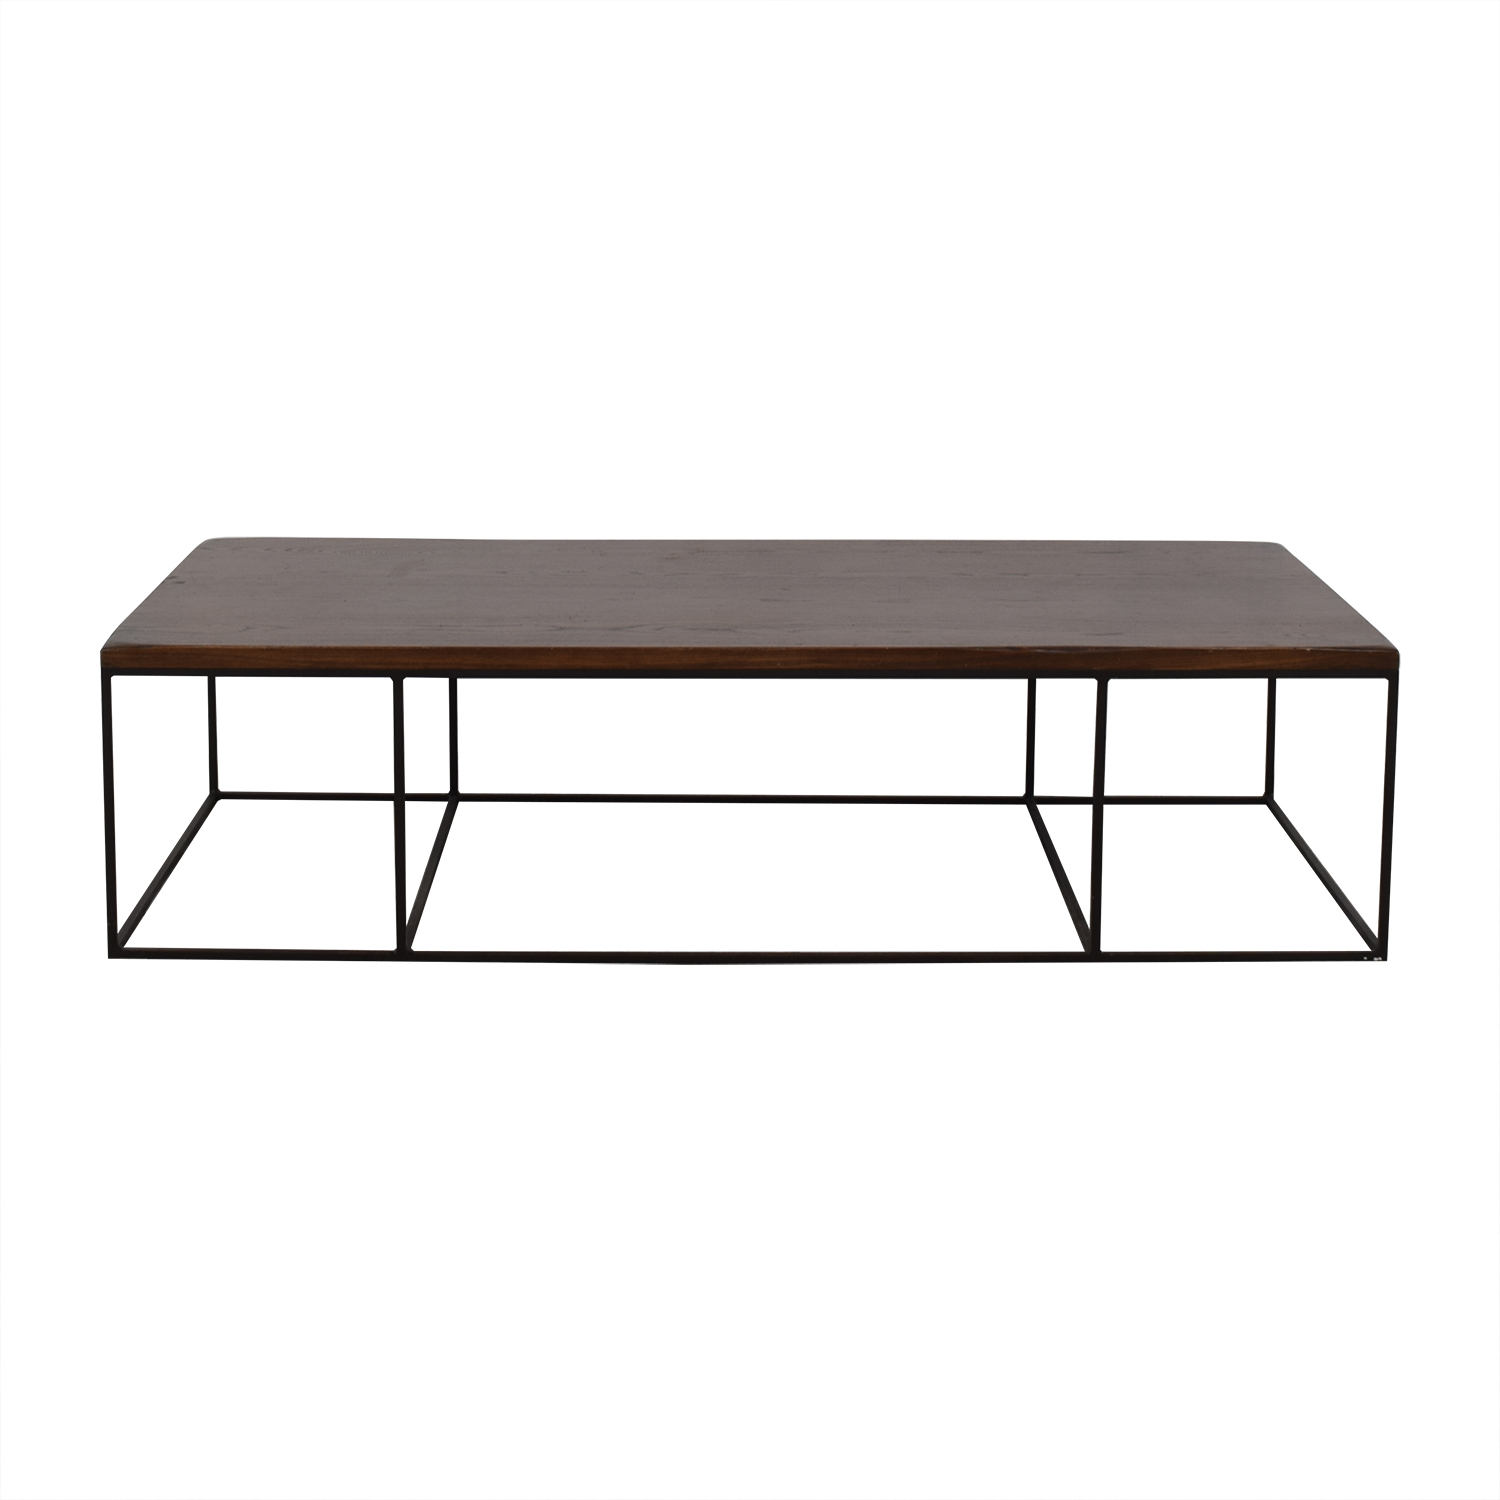 Restoration Hardware Restoration Hardware Coffee Table price